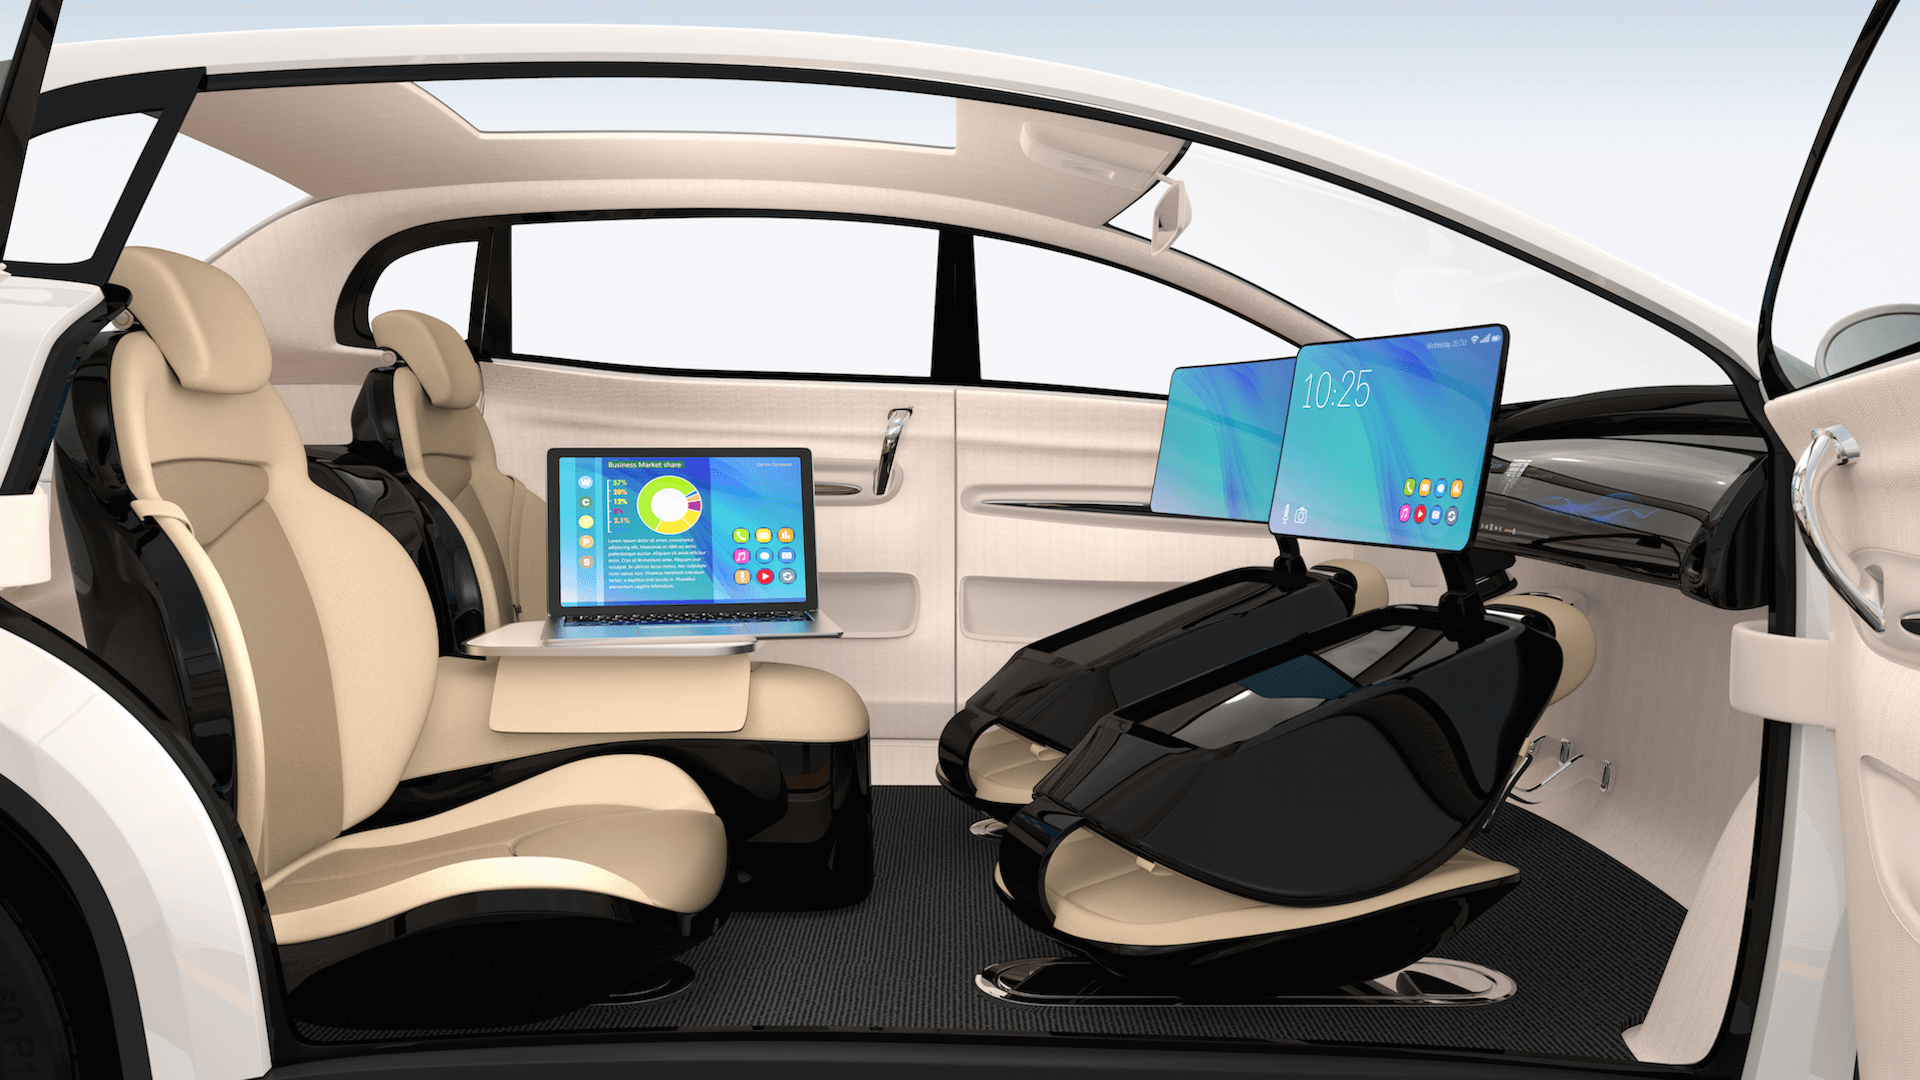 Milestone Reached In Self-Driving Cars In China